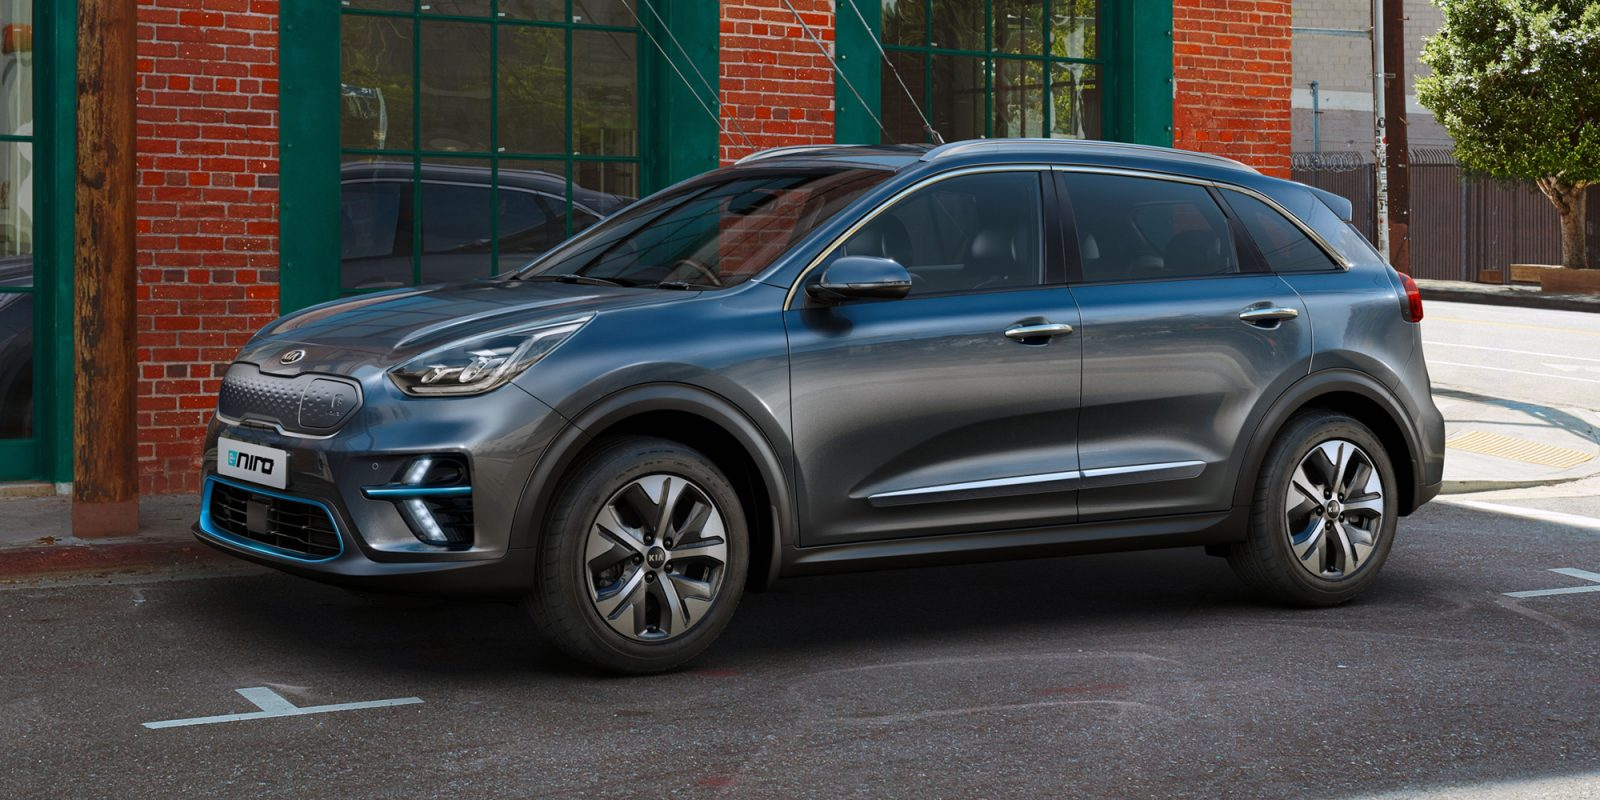 Kia solves EV supply problems, can deliver on 3,000 Niro EV pre-orders in Europe